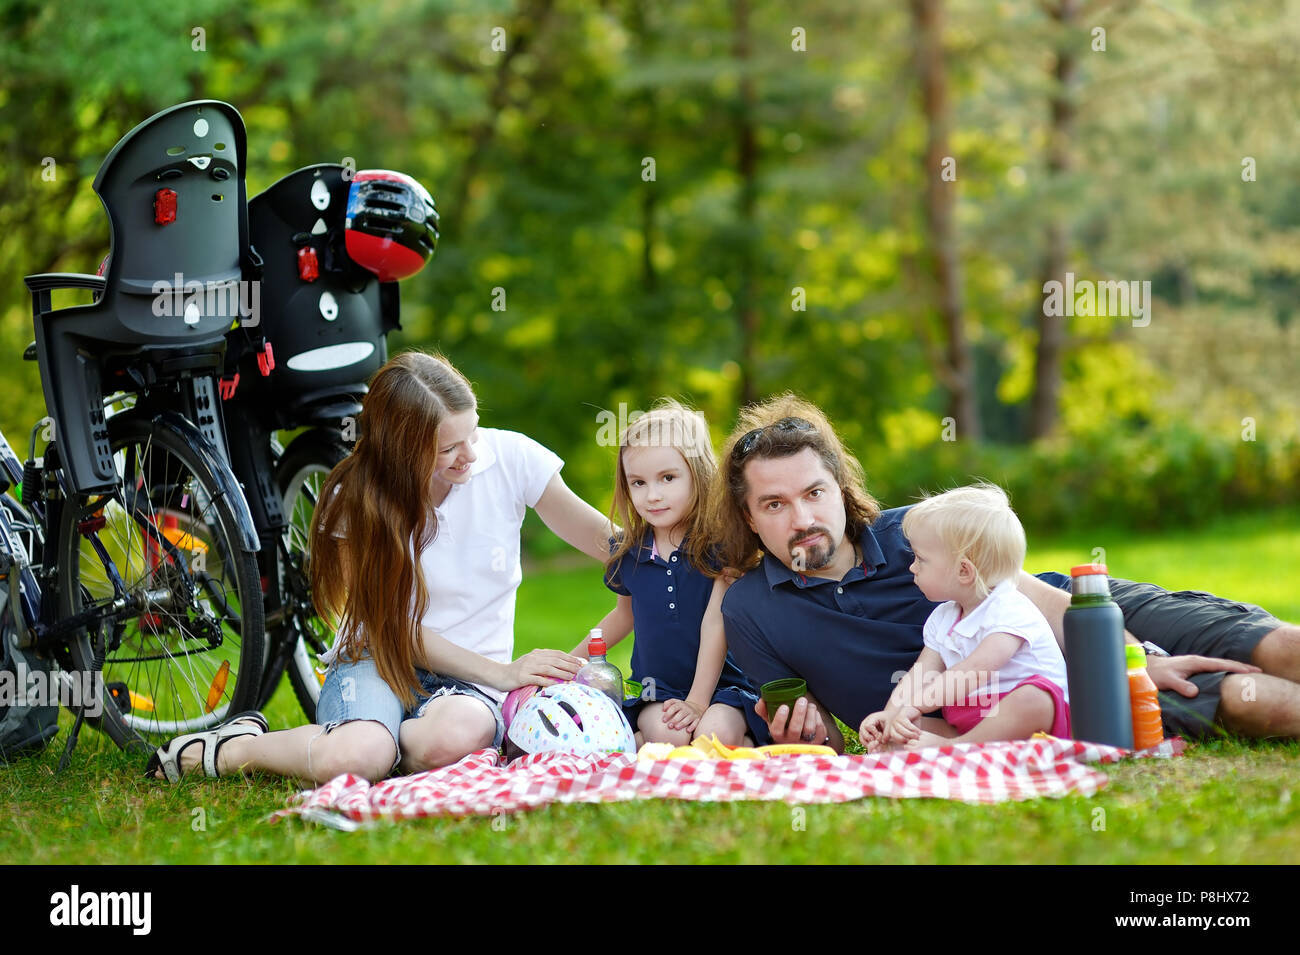 Happy family of four picnicking in the park - Stock Image